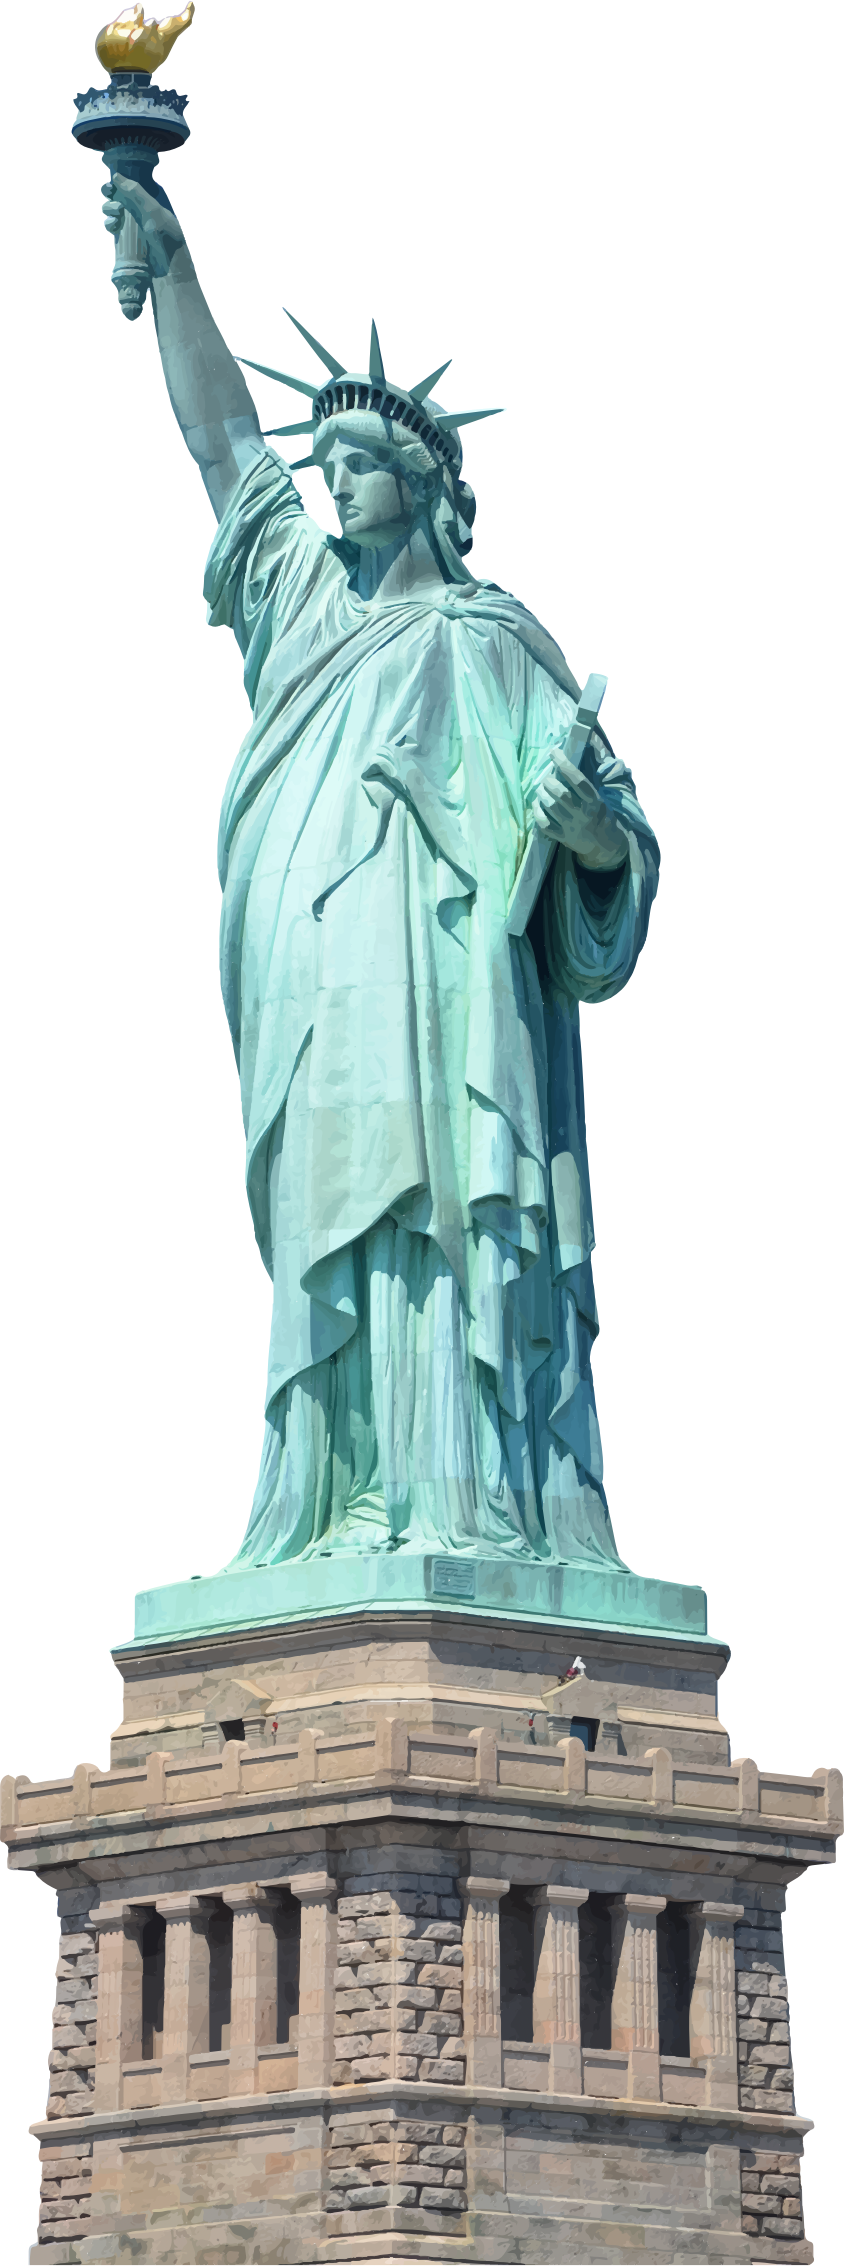 graphic transparent stock Png statue of images. Liberty clipart transparent.